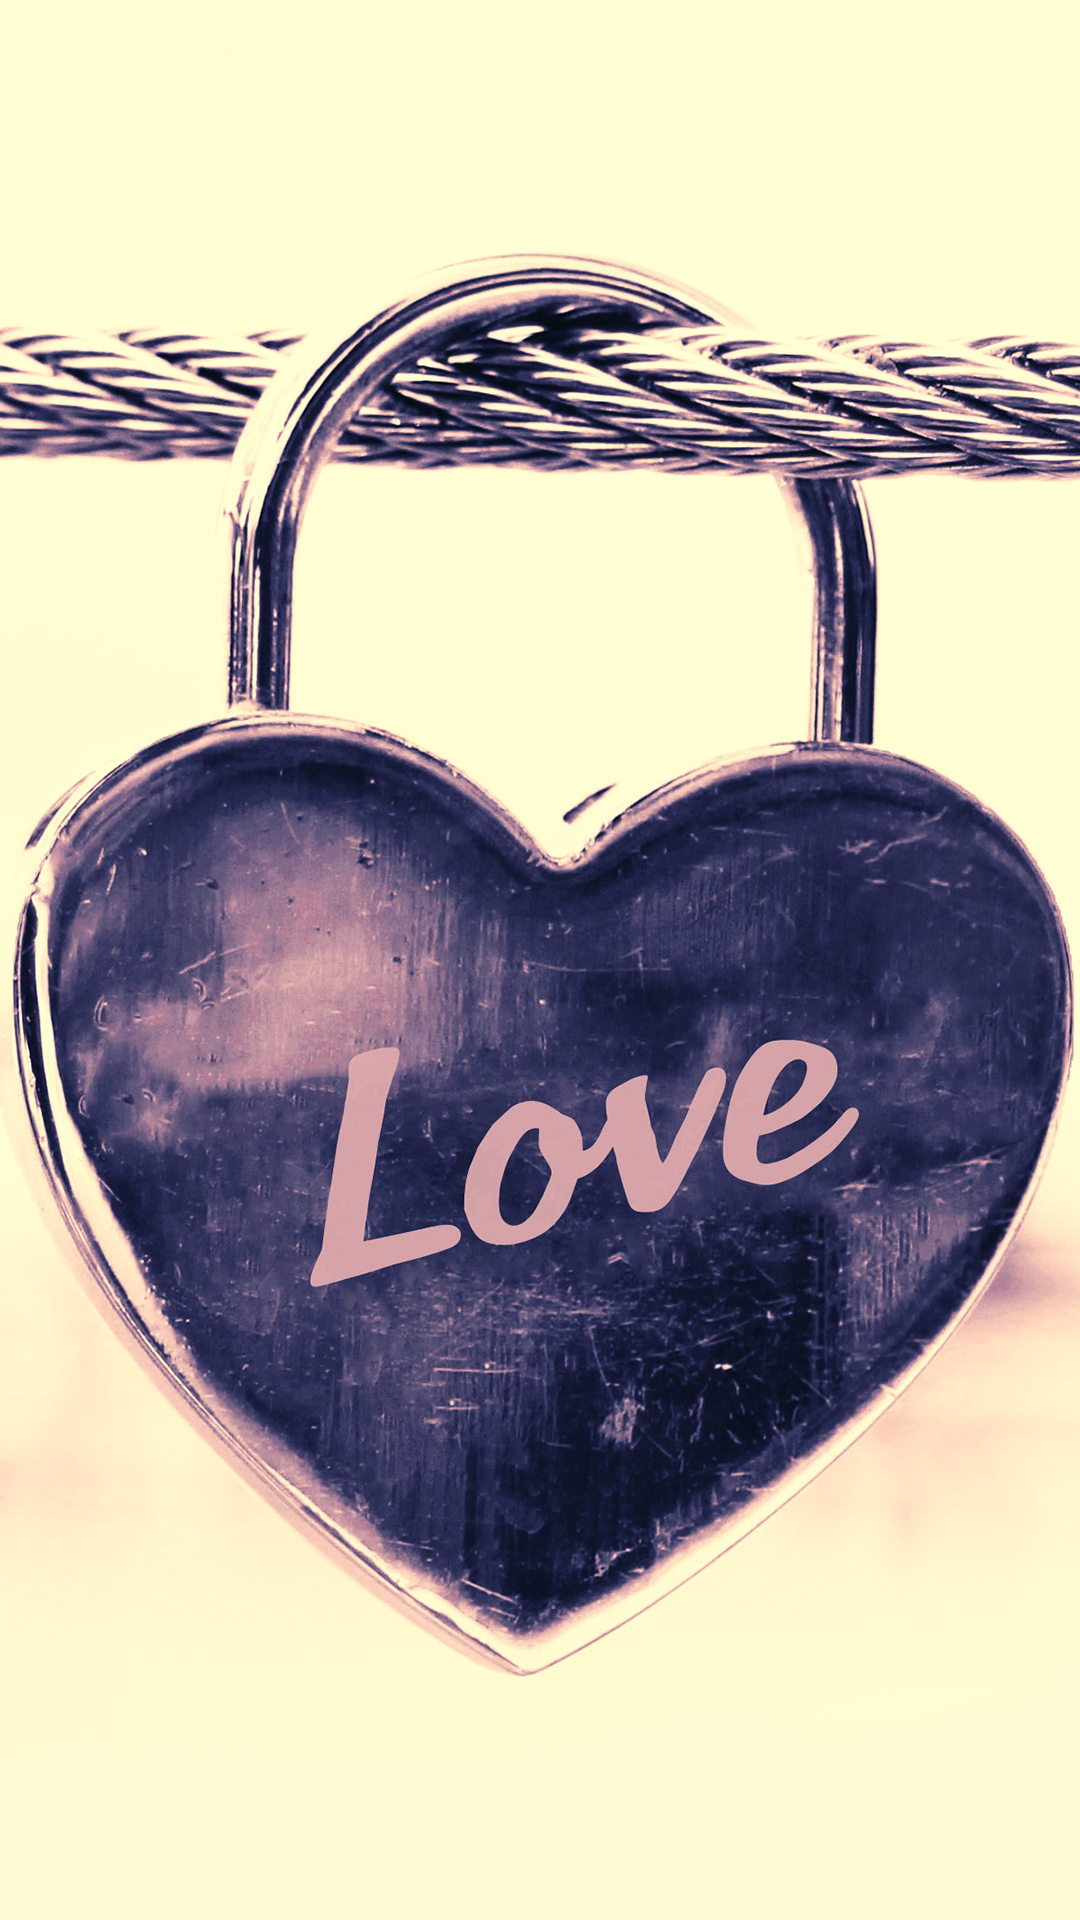 Download Our Hd Love Lock Wallpaper For Android Phones 0451